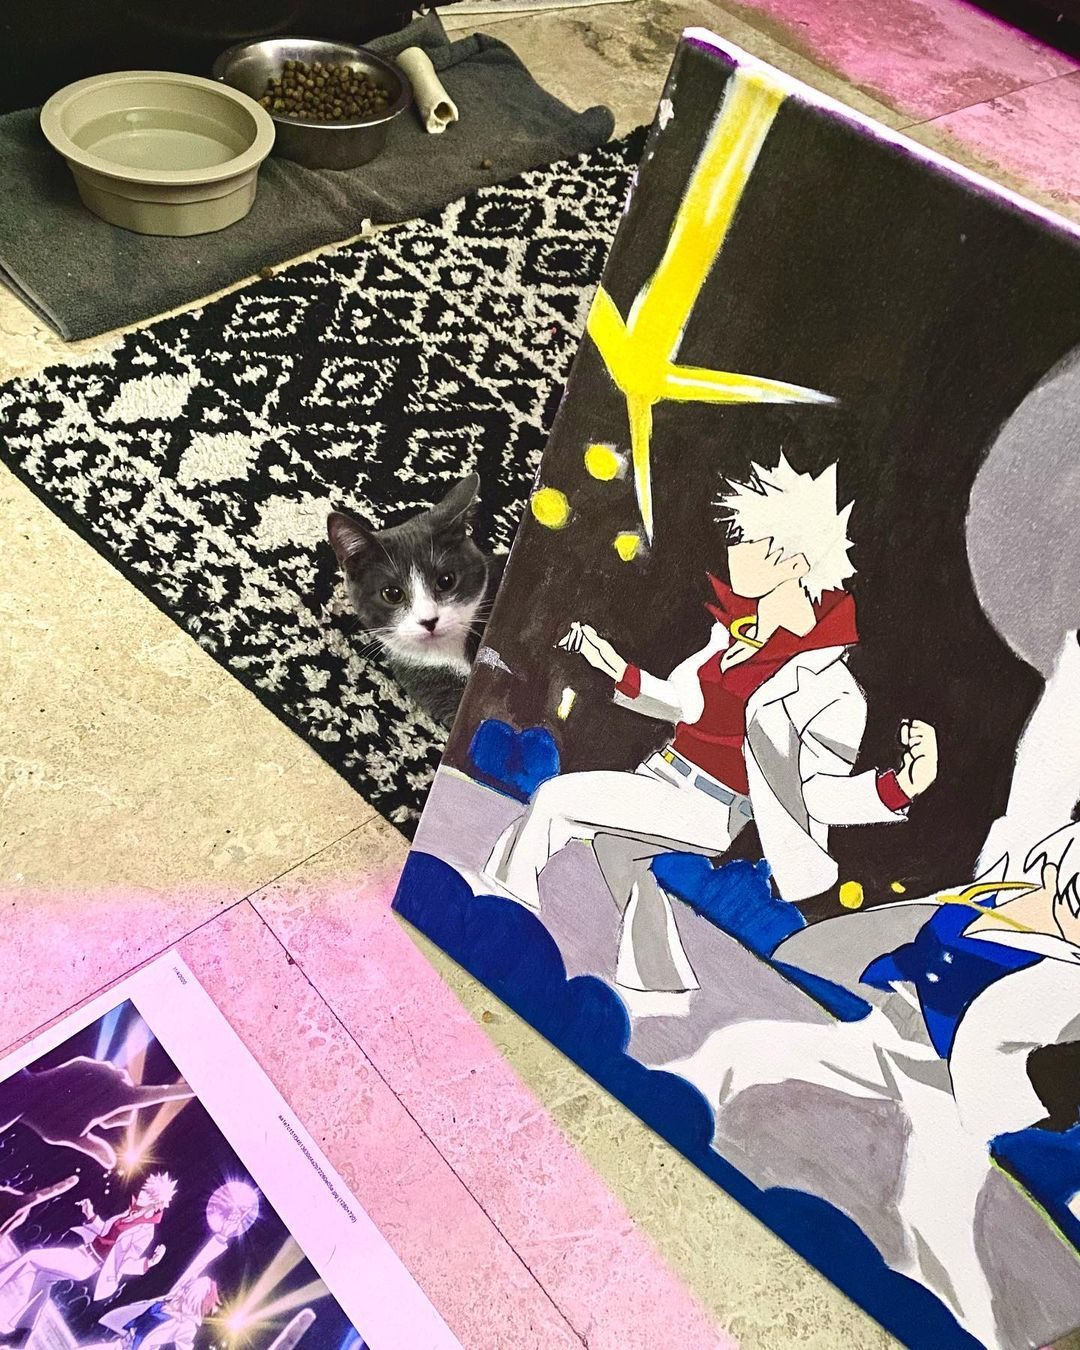 Is that the dance scene from the School Festival arc in @plusultra?! 👀 • Why, yes, little kitten it is! The very one with Todoroki and Bakugo, and it's up for grabs!! 🙀DM me if you're interested! 😺 • • Artist: @sir_oculus_dexter🎨 Page: @sir_oculus_designs 🎨 • • • • Hashtags: #artist #art #dallasartist #dallasart #localart #localartist #artoninstagram #artofinstagram #artistoninstagram #artistsoninstagram #todoroki #bakugo #mha #schoolfestival #animeart #anime #fanart #fanartanime